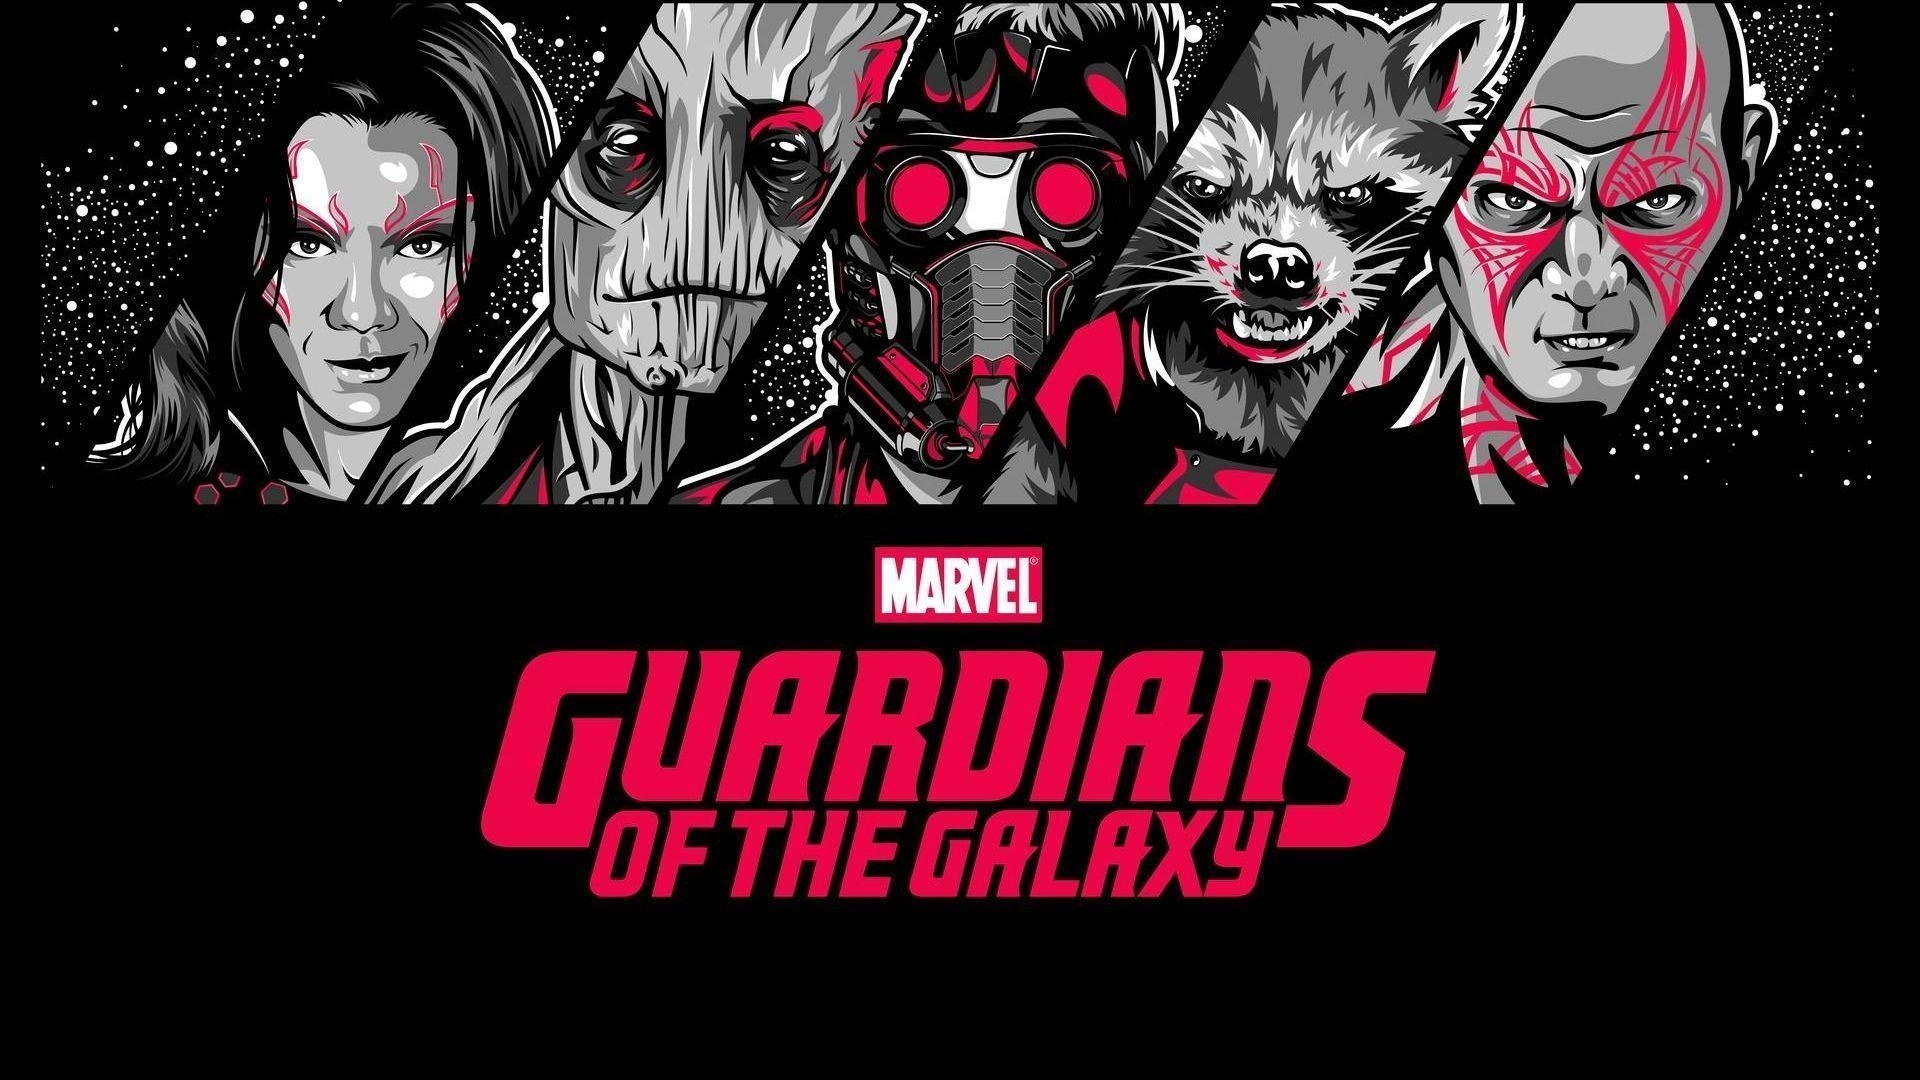 guardians of the galaxy wallpapers - wallpaper cave